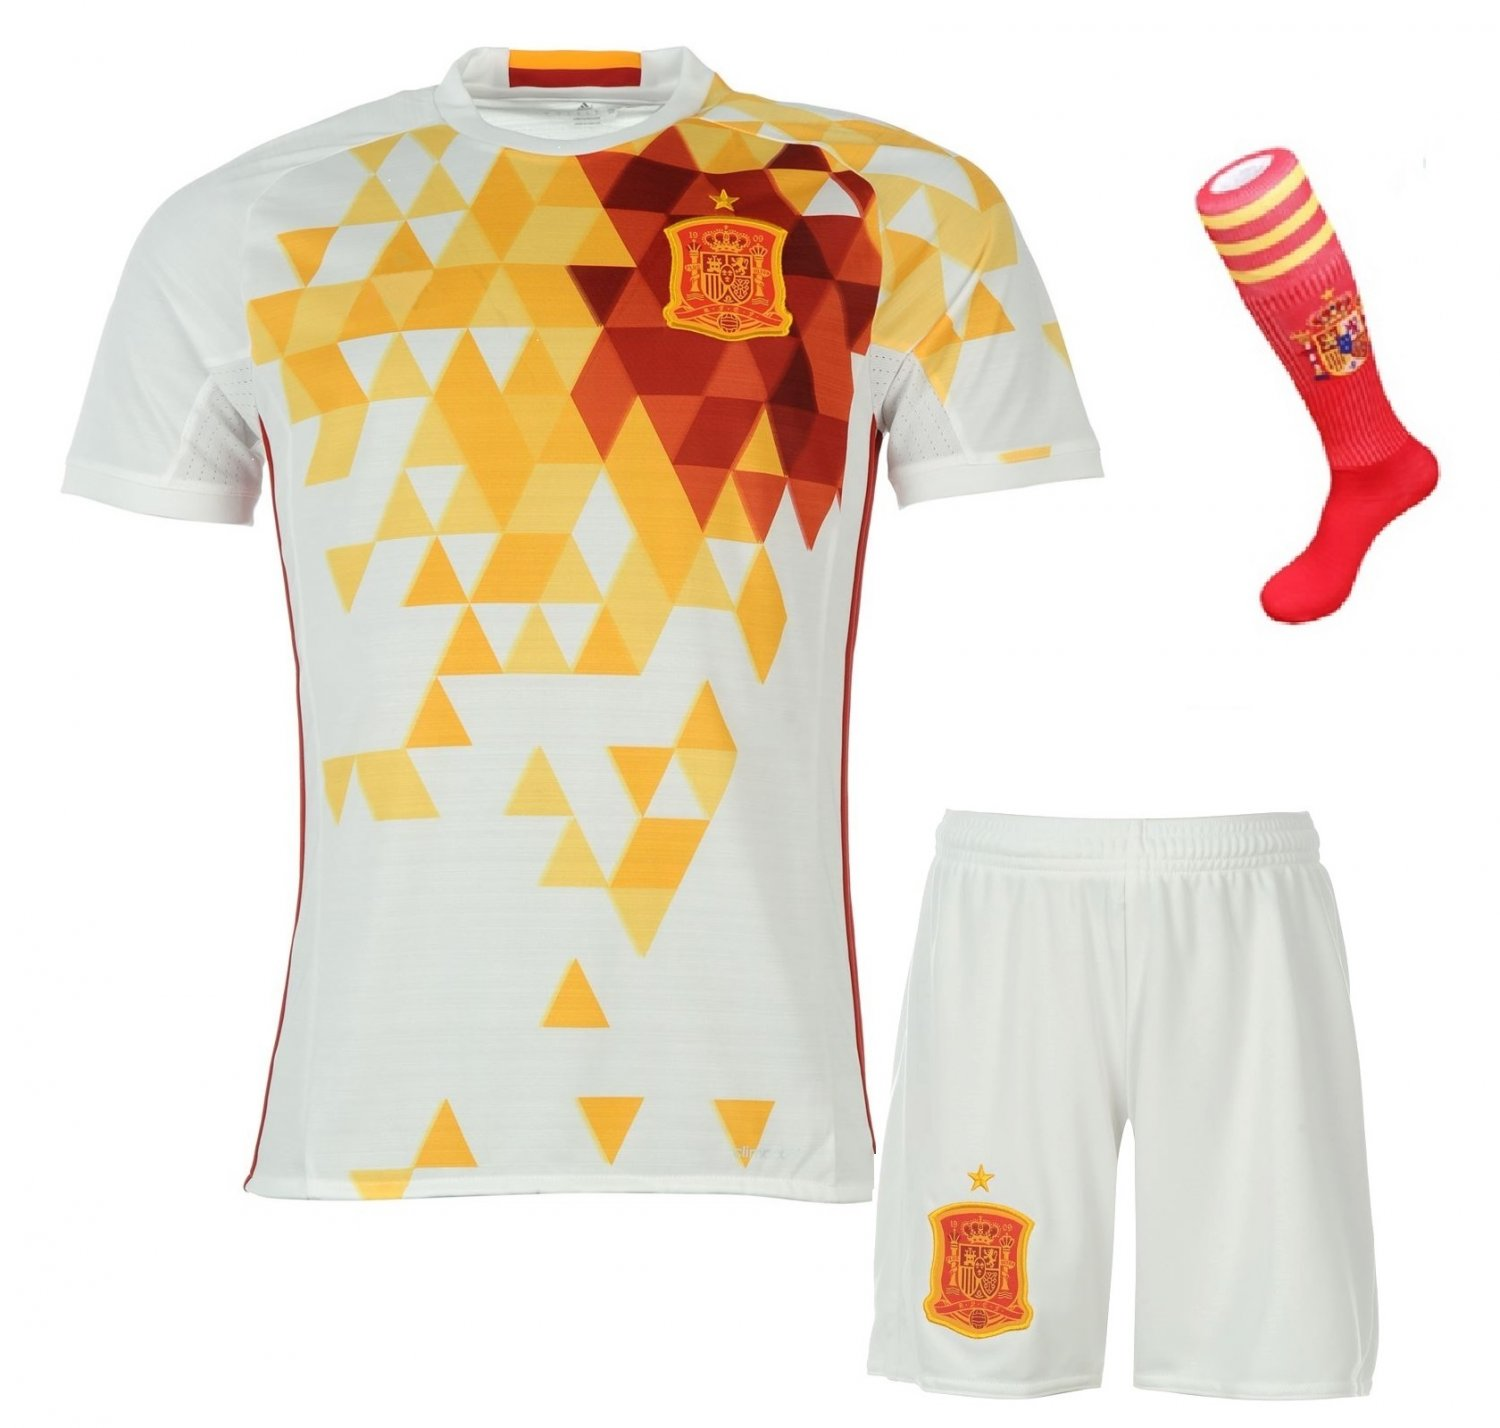 Spain World Cup Away football soccer jersey w shorts & socks kid youth for age 6-8